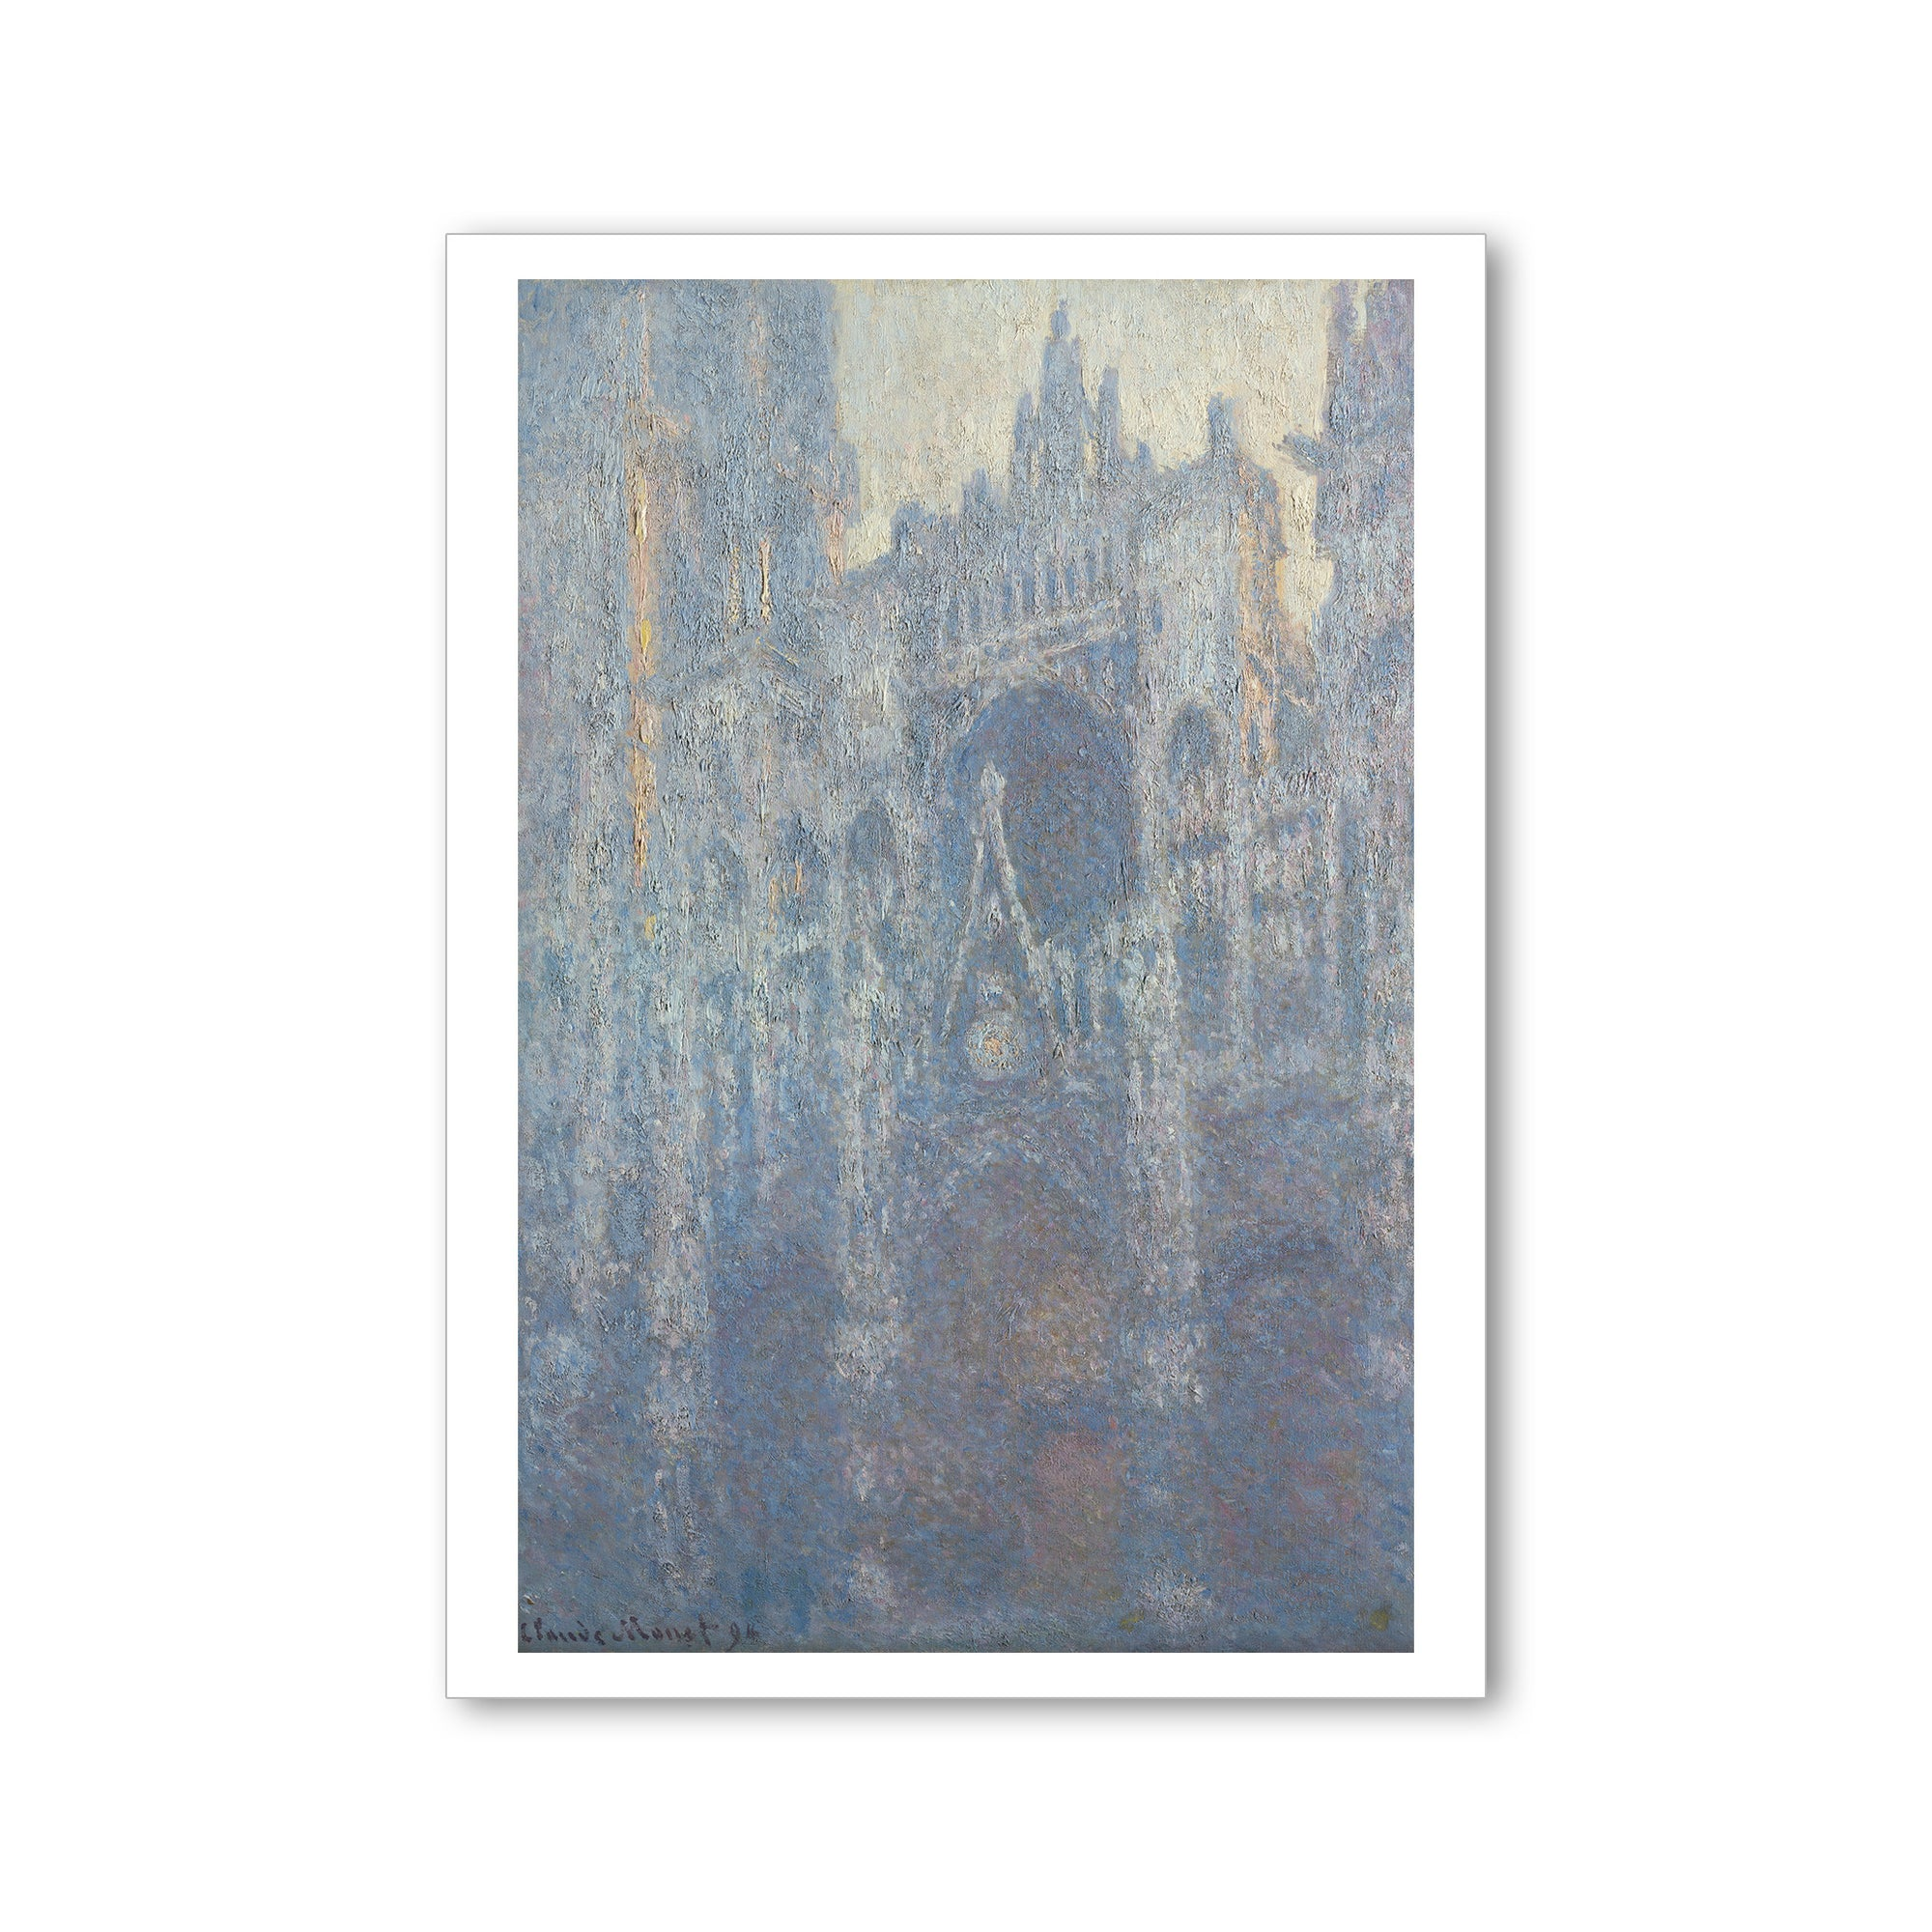 Monet- Portal of Rouen Cathedral in Morning Light- Postcard | Getty Store